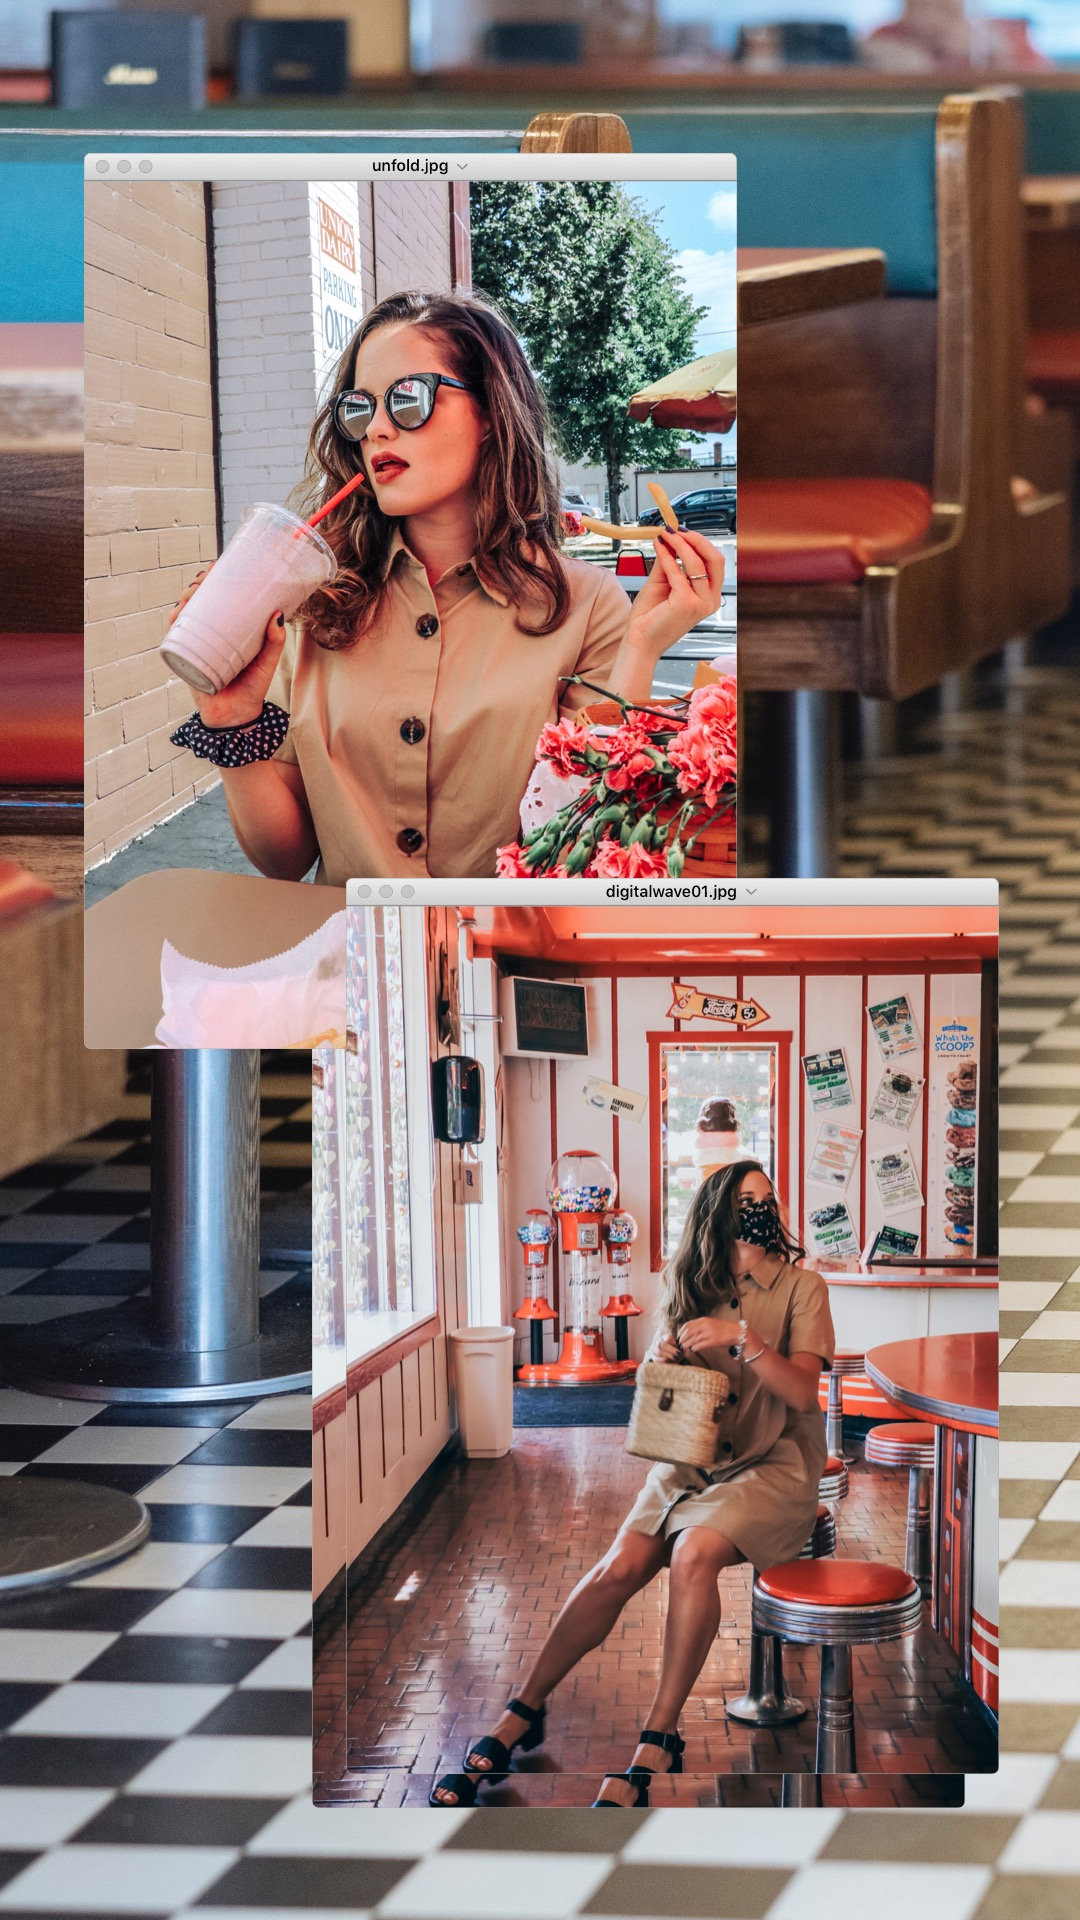 Fashion blogger Kathleen Harper posing in a diner during a photo shoot with milkshake and fries.